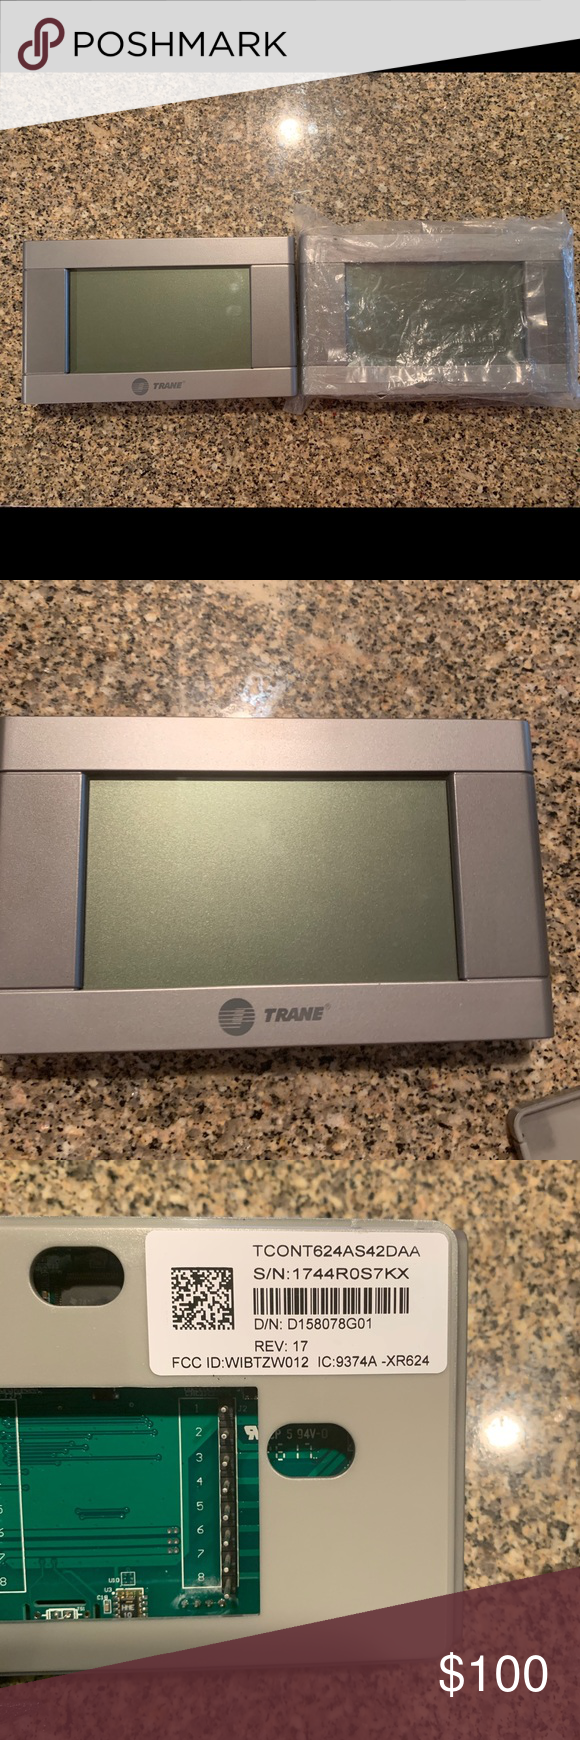 Two Brand New Trane Thermostats Two New Trane Thermostats For 100 A Piece They Are Originally 199 A Piece At Home Depot Trane Trane Thermostat Touch Screen